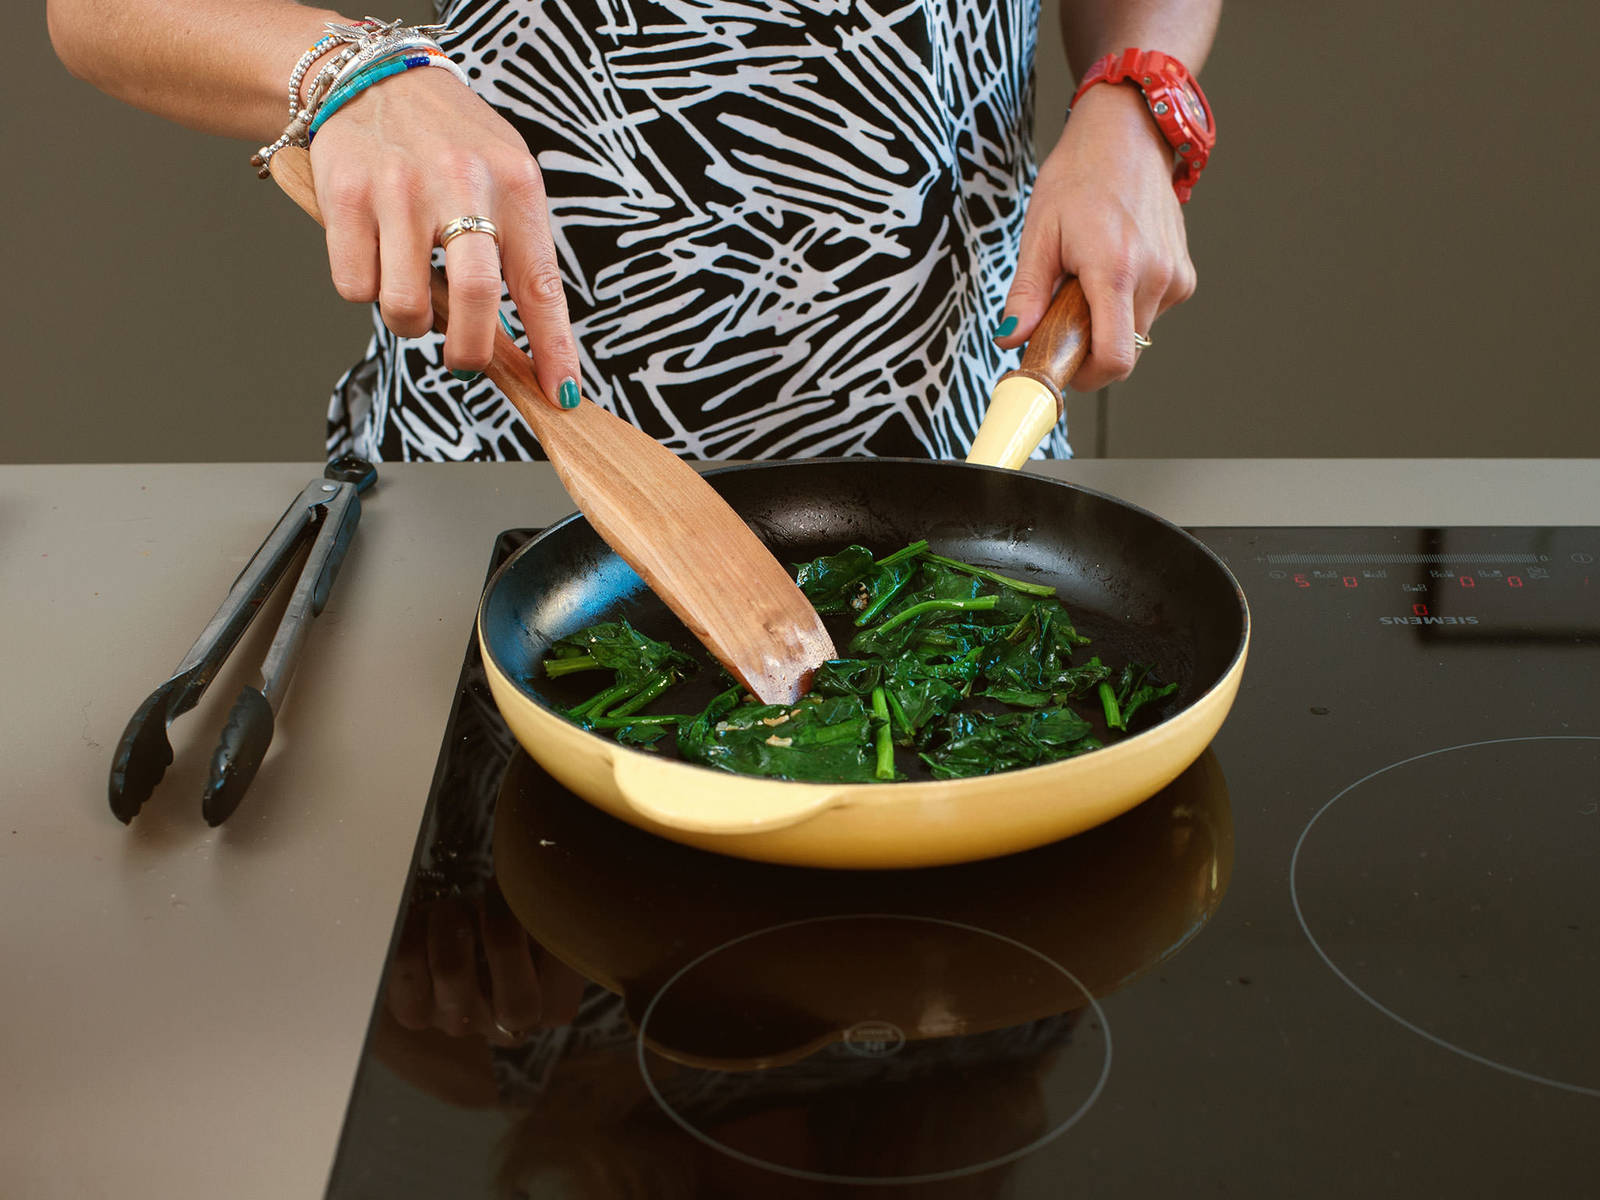 Add some of the coconut oil to pan, sauté garlic, and wilt spinach over medium heat for approx. 1 – 2 min. Drizzle with part of the lemon juice. Add toasted pine nuts to spinach and set aside.